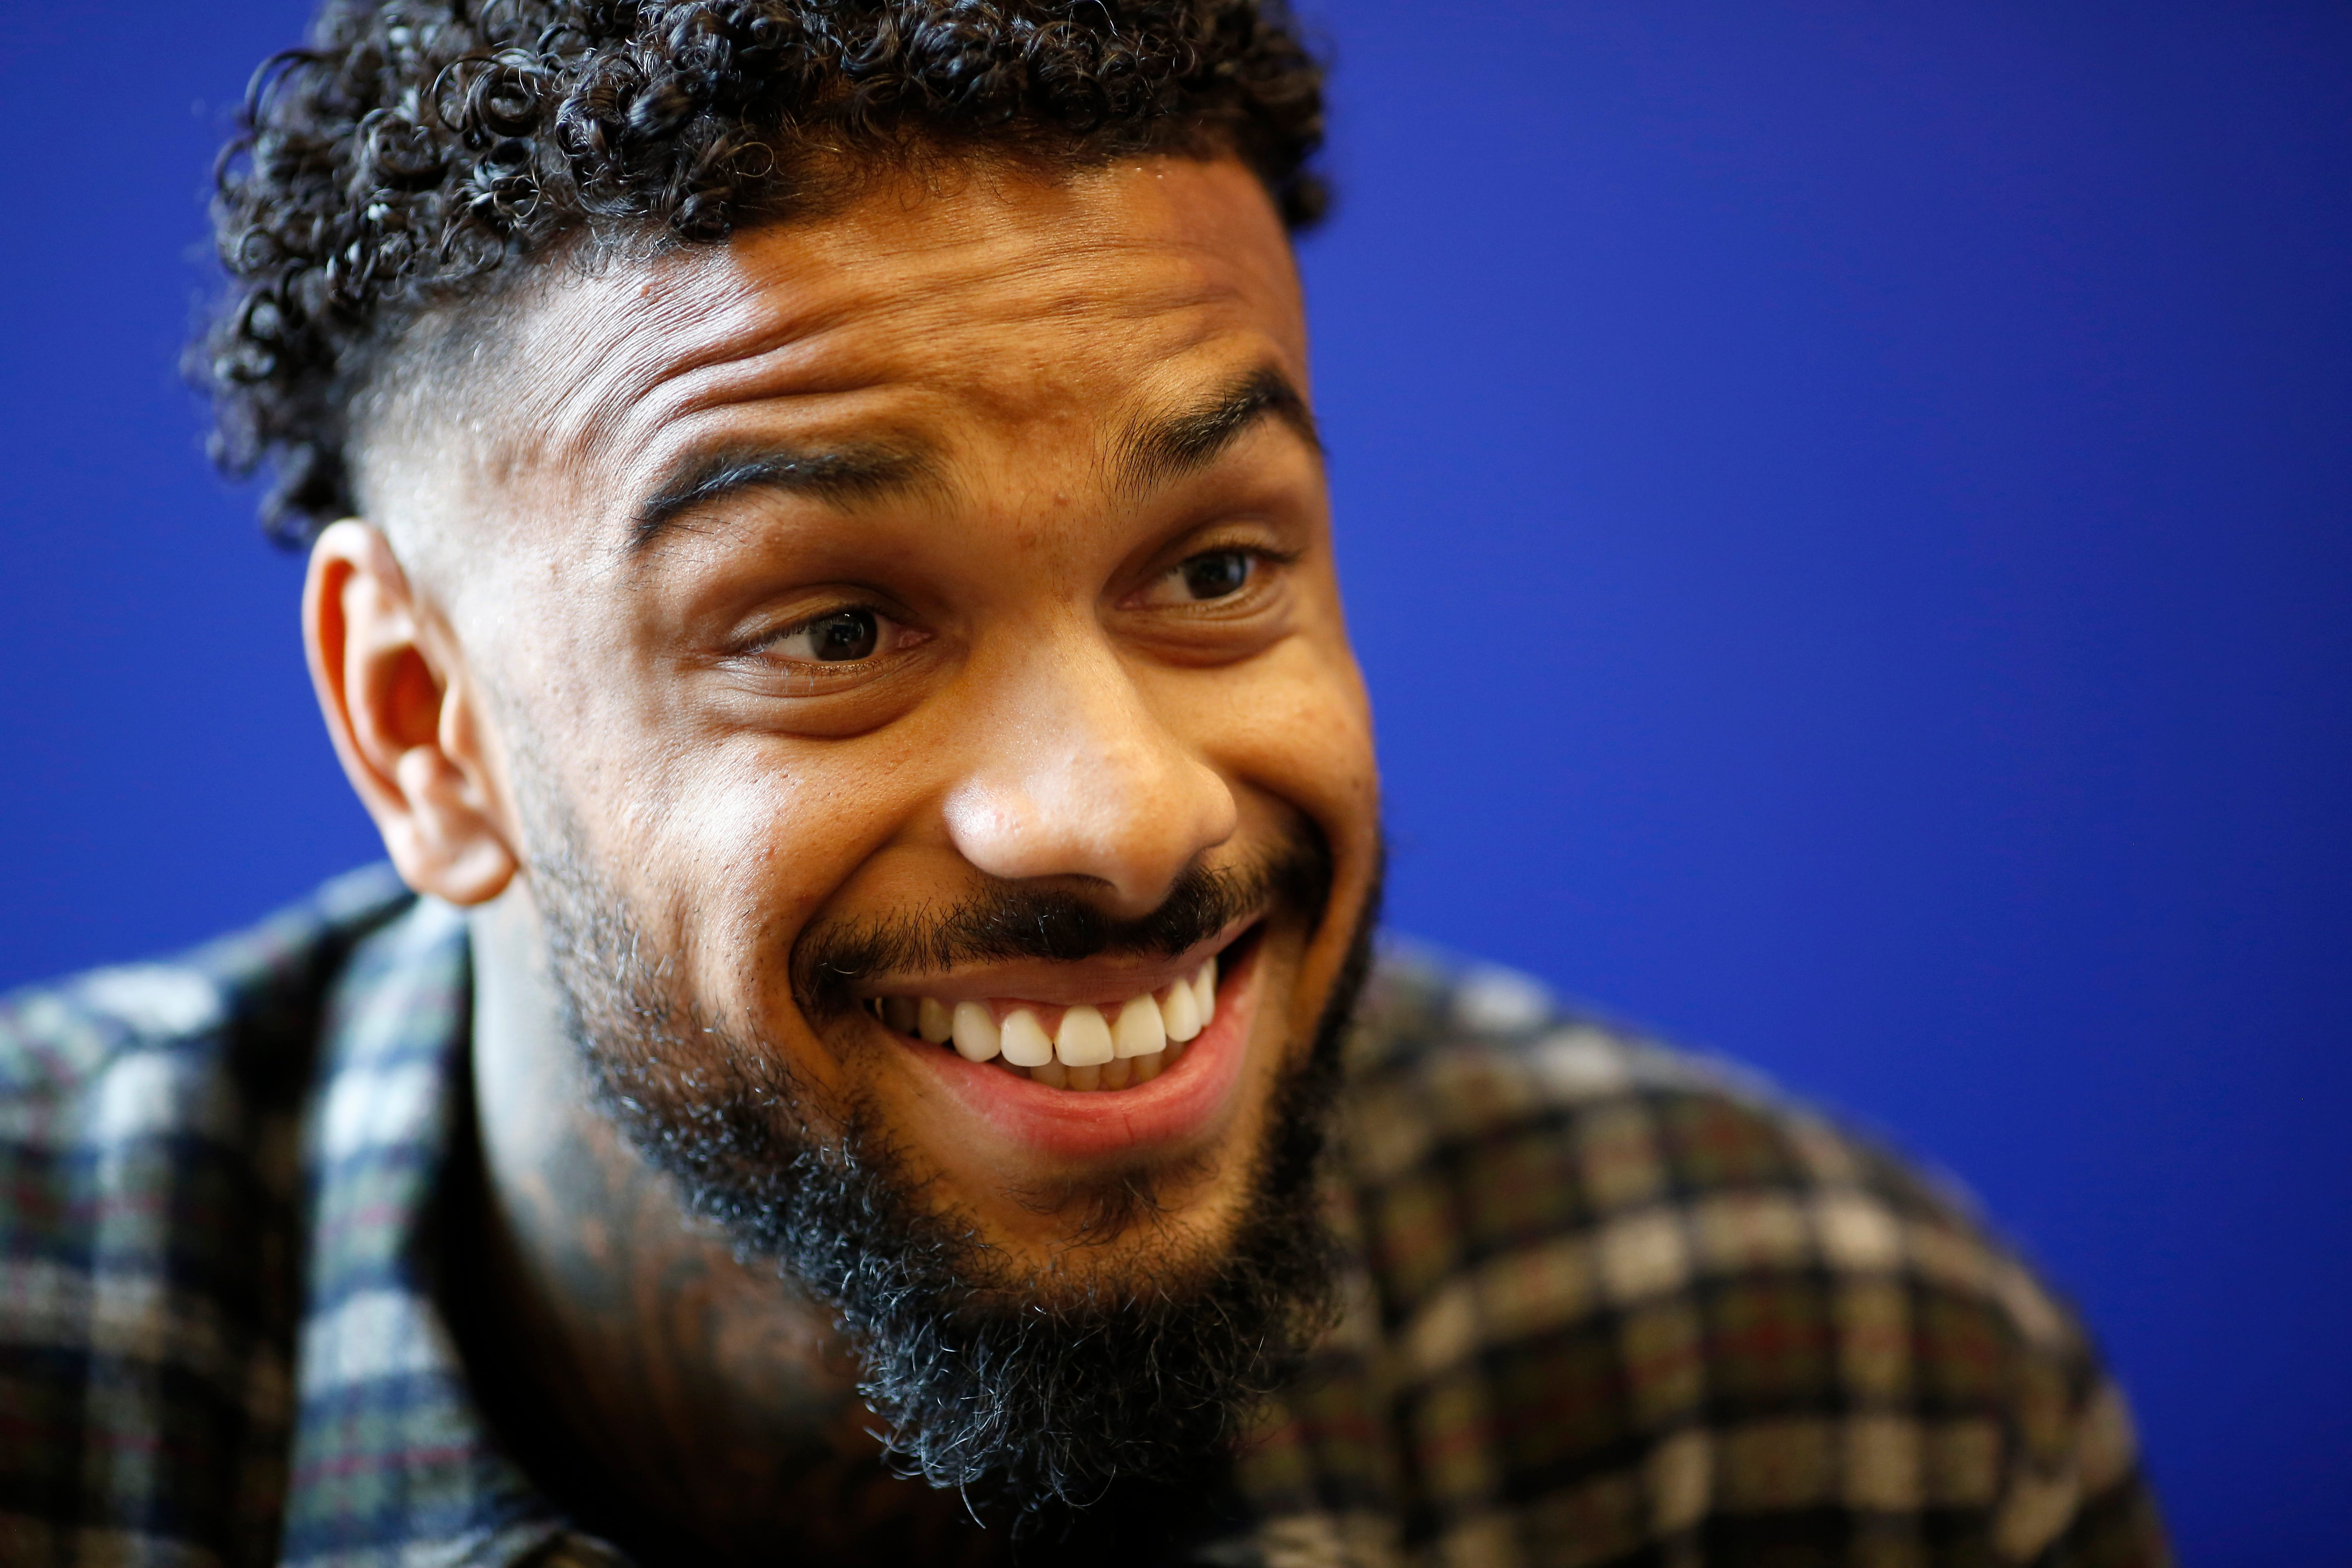 New FC Cincinnati signee Jürgen Locadia speaks with The Enquirer at the FC Cincinnati training facility in Milford, Ohio, on Monday, Feb. 3, 2020. The Dutch striker comes to Cincinnati via a transfer from the English Premier League's Brighton and Hove Albion. He must pass a physical Monday, but is expected to be formally introduced as an FC Cincinnati player this week.